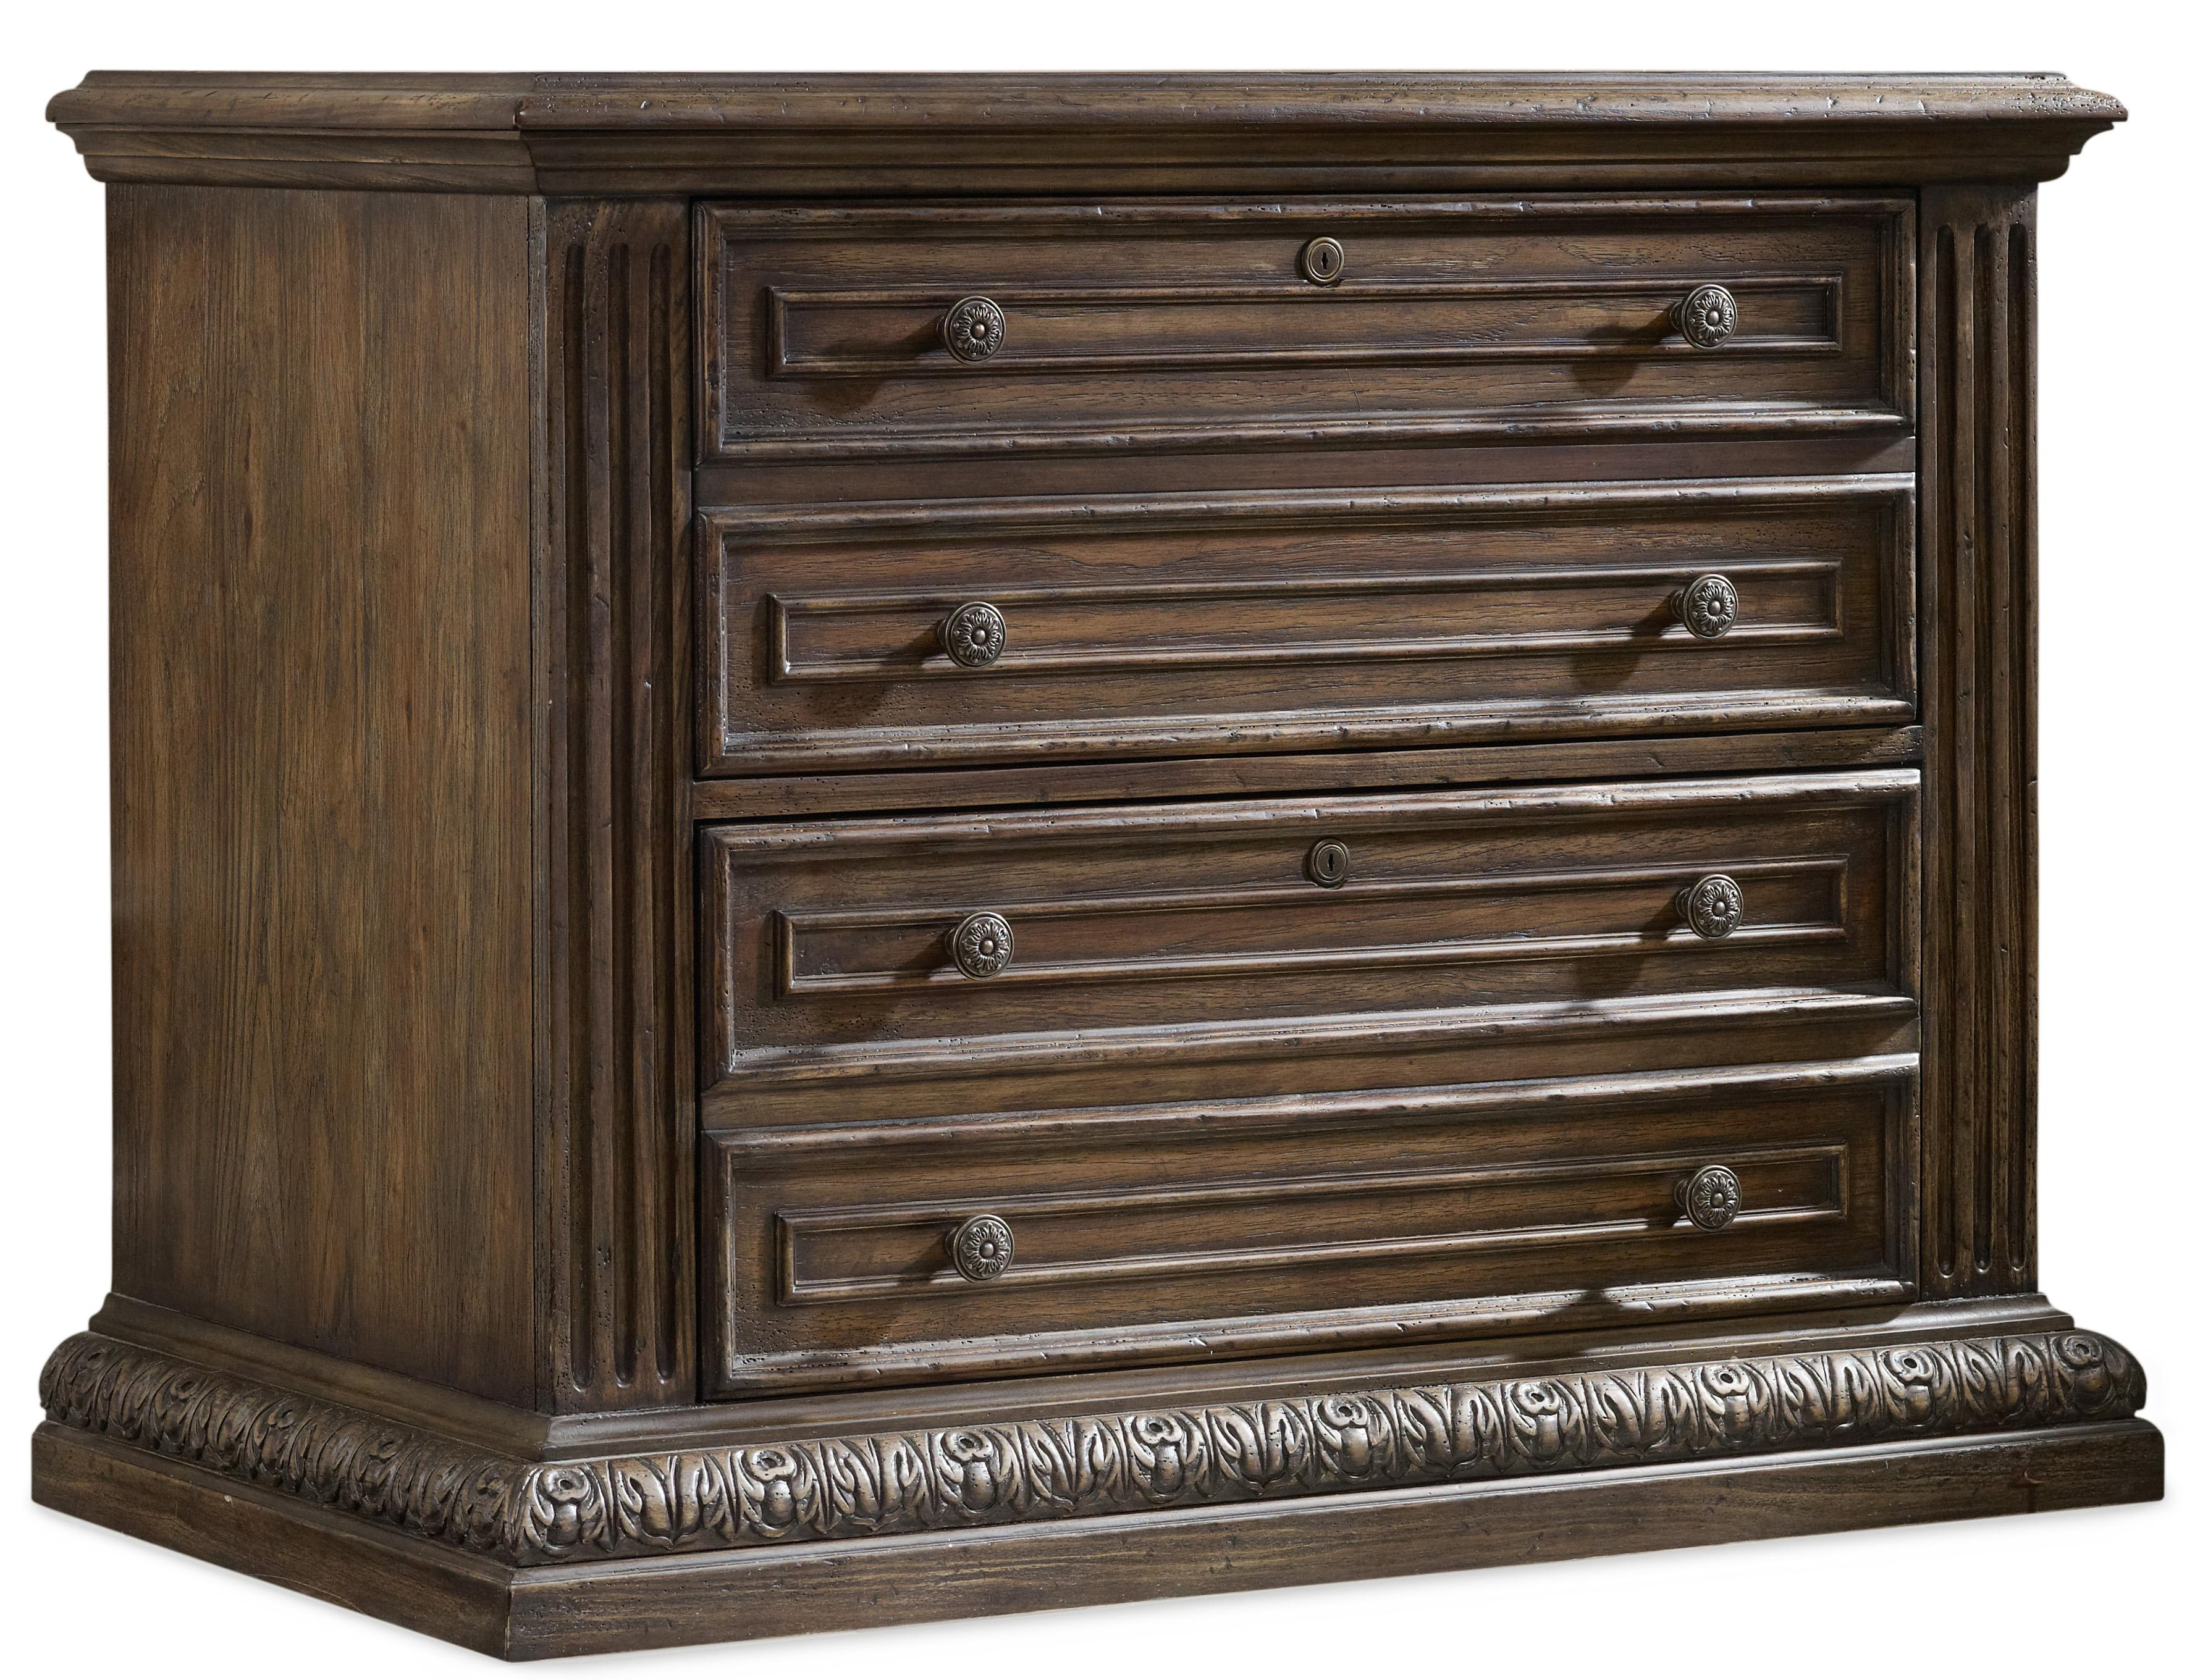 Hooker Furniture Rhapsody Lateral File - Item Number: 5070-10466